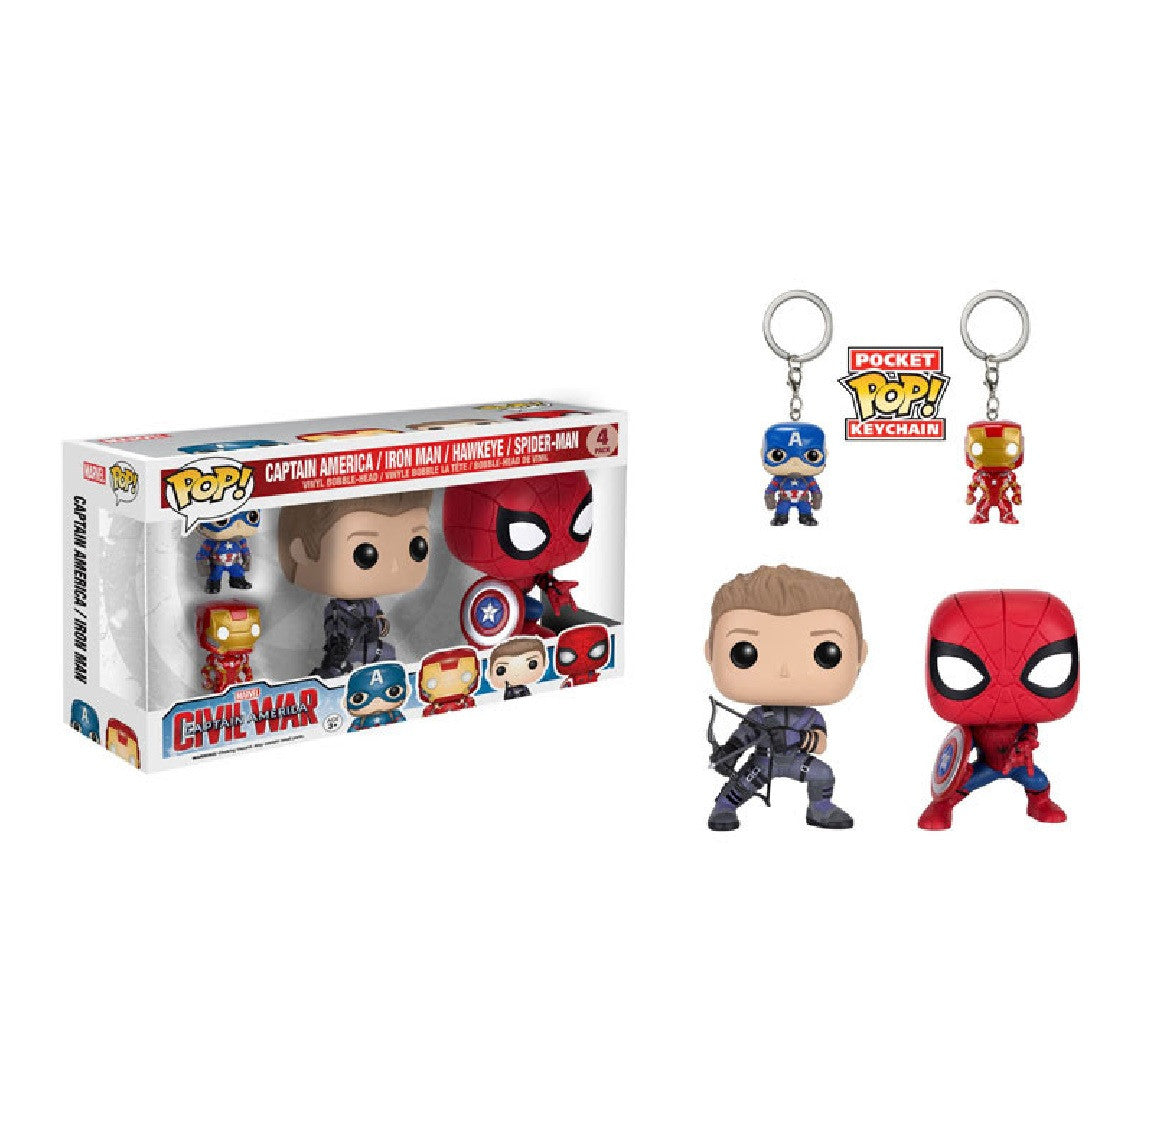 Marvel Pop! Vinyl Civil War 4 Pack [Captain America/Iron Man/Hawkeye/Spiderman] - Fugitive Toys